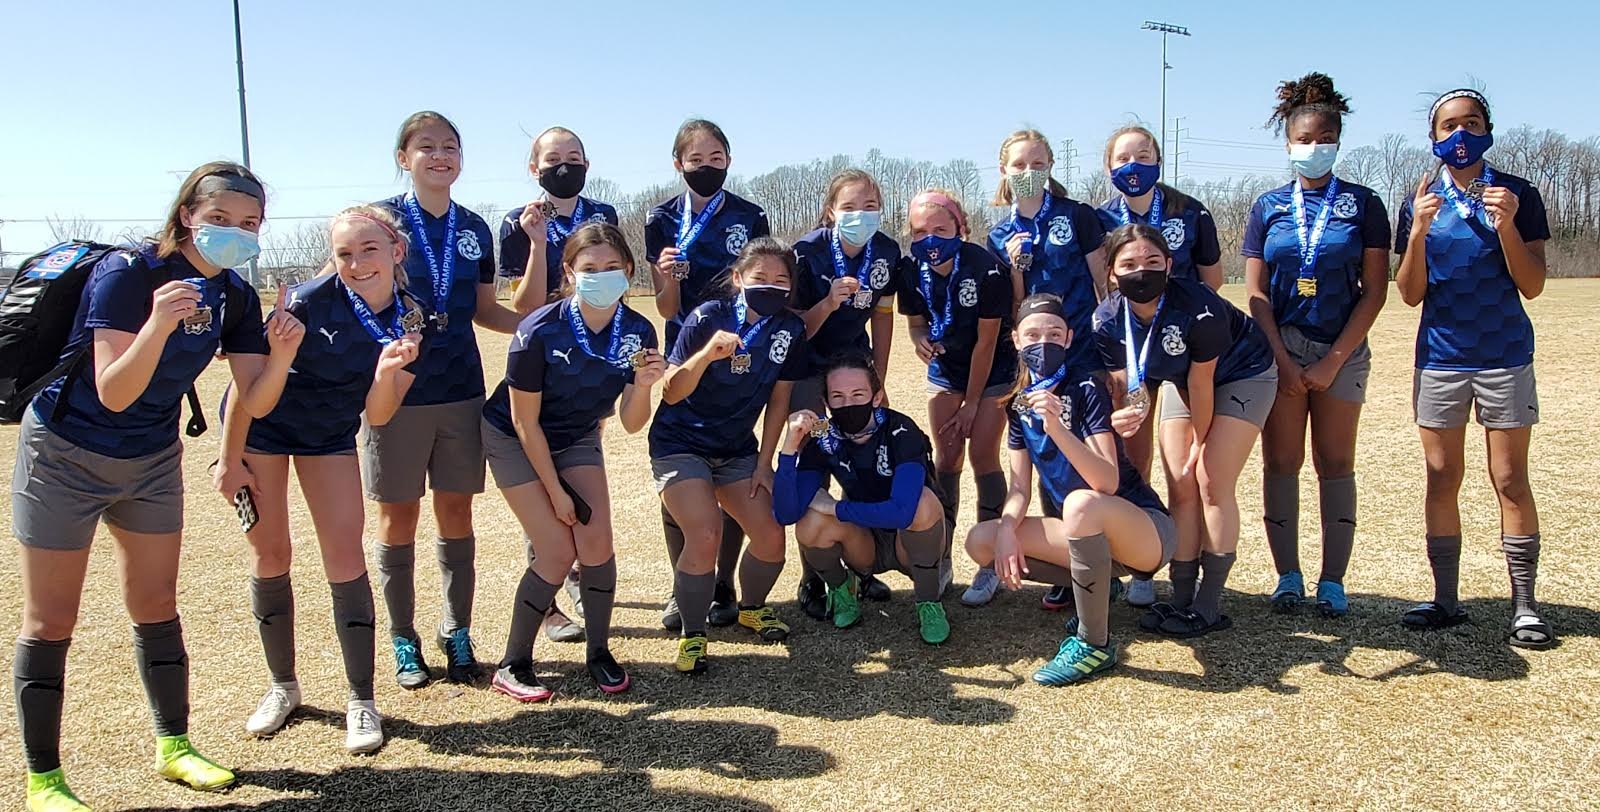 BAC Flash (U16G) wins at the PWSI IceBreaker Tournament